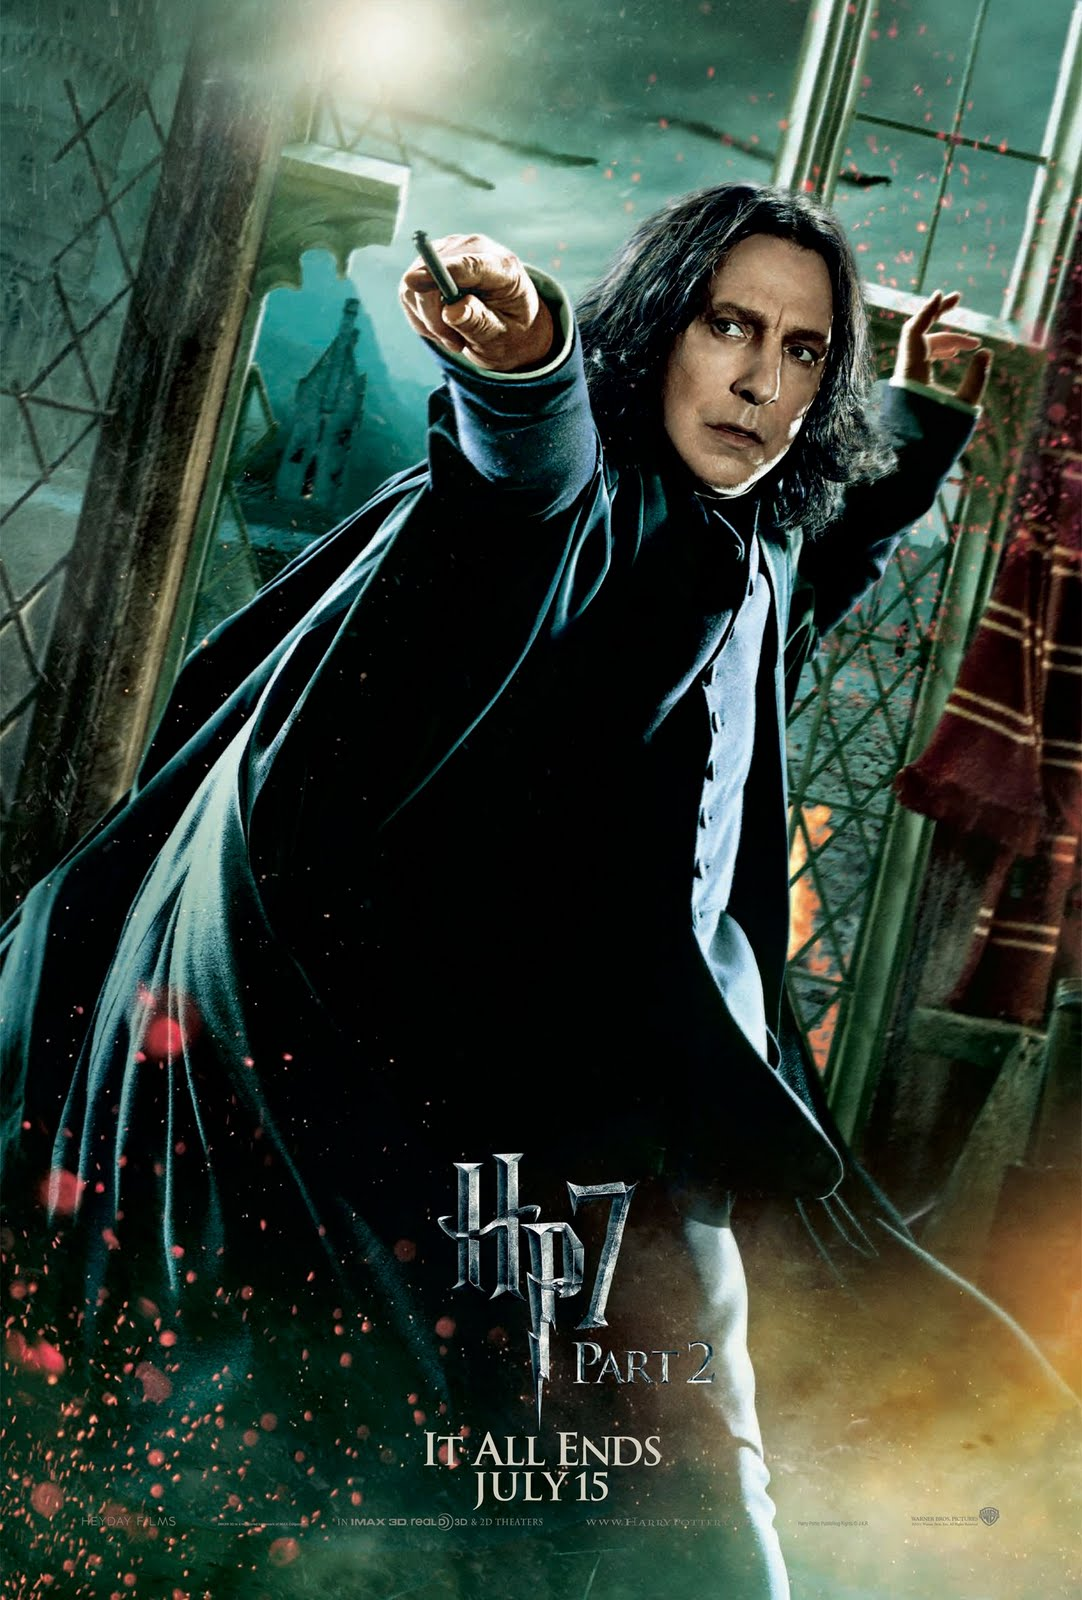 dh2hr snape Harry Potter And The Deathly Hallows Part 2: Posters Galore!